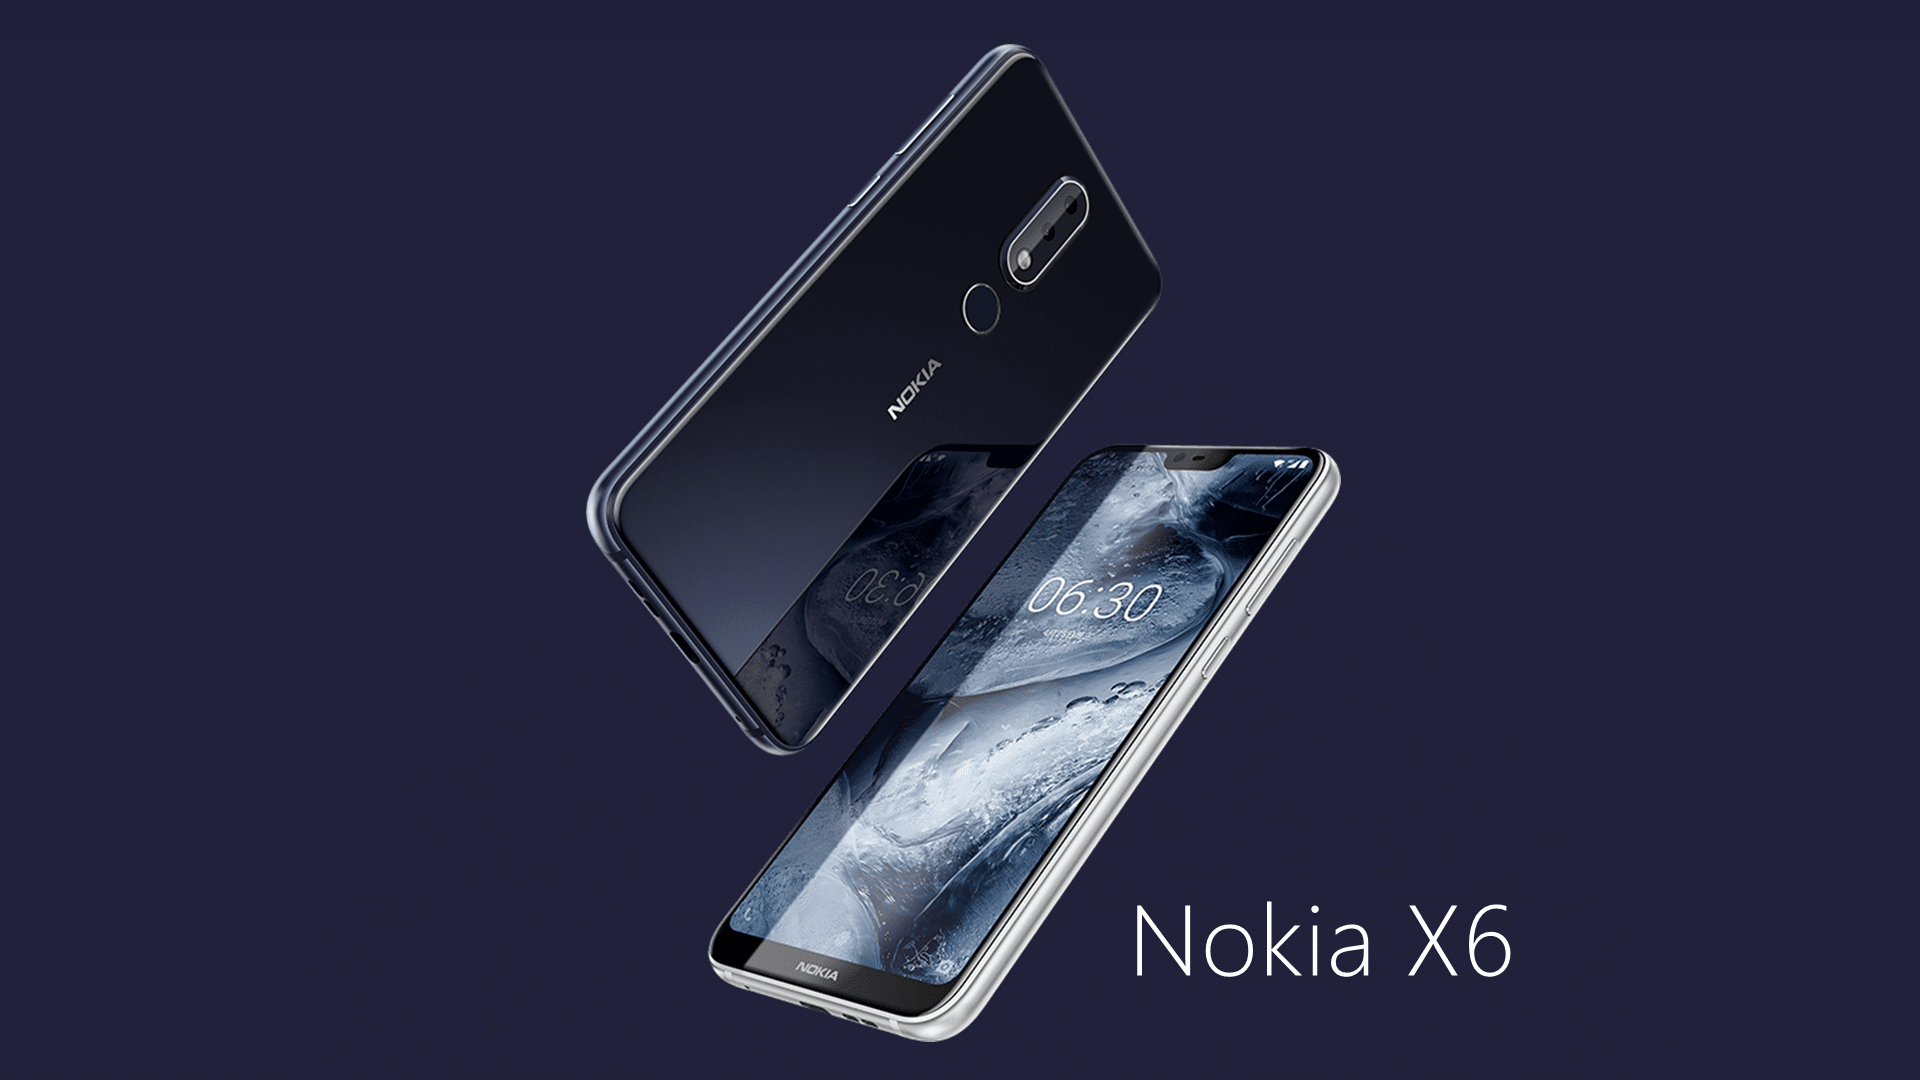 Nokia X6 Got Announced With Snapdragon 636 And Dual Cameras In China